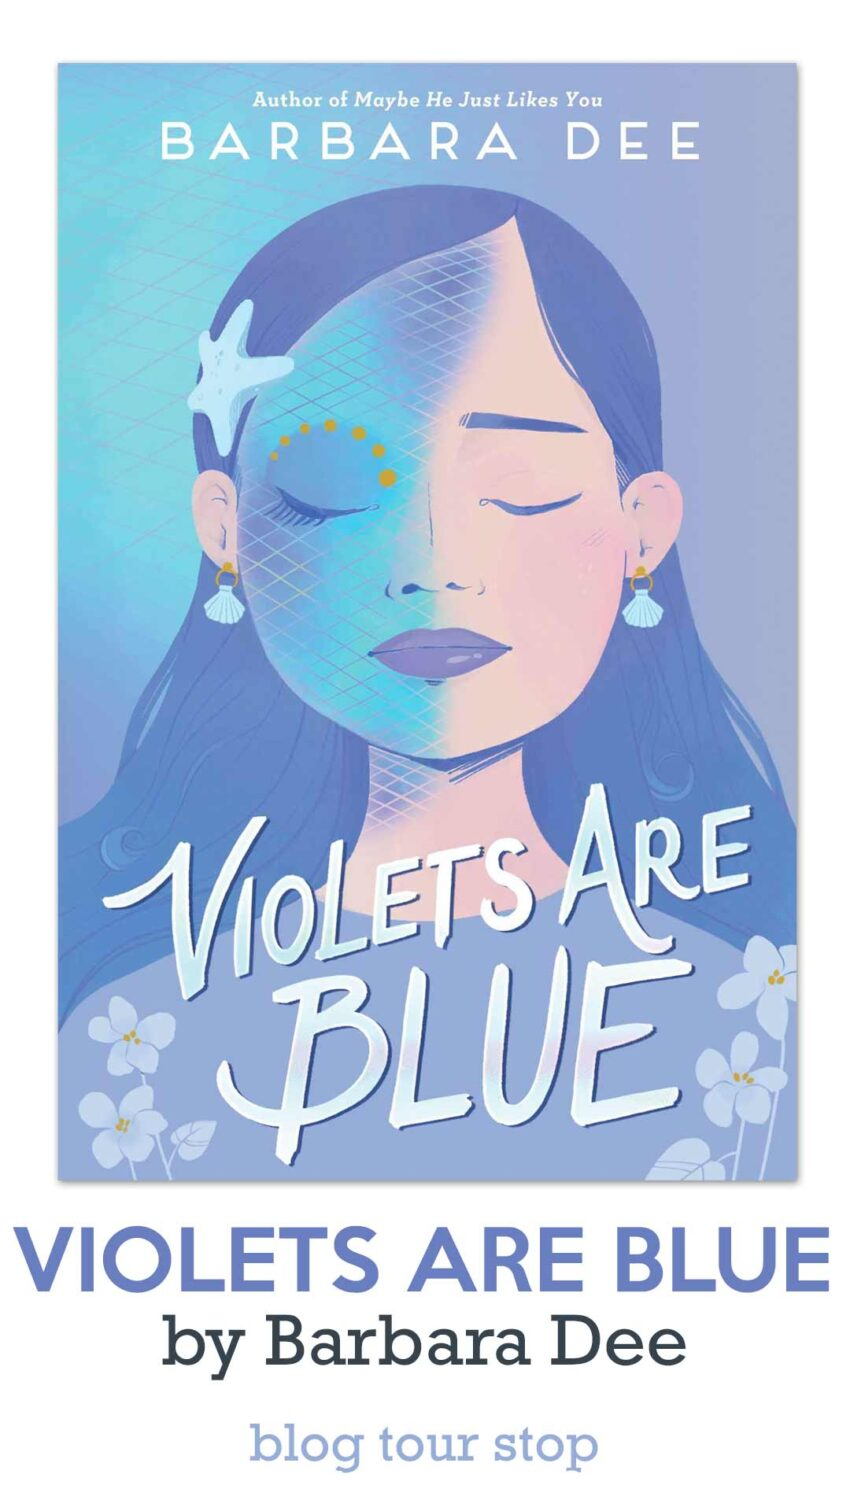 Violets Are Blue by Barbara Dee Blog Tour Stop